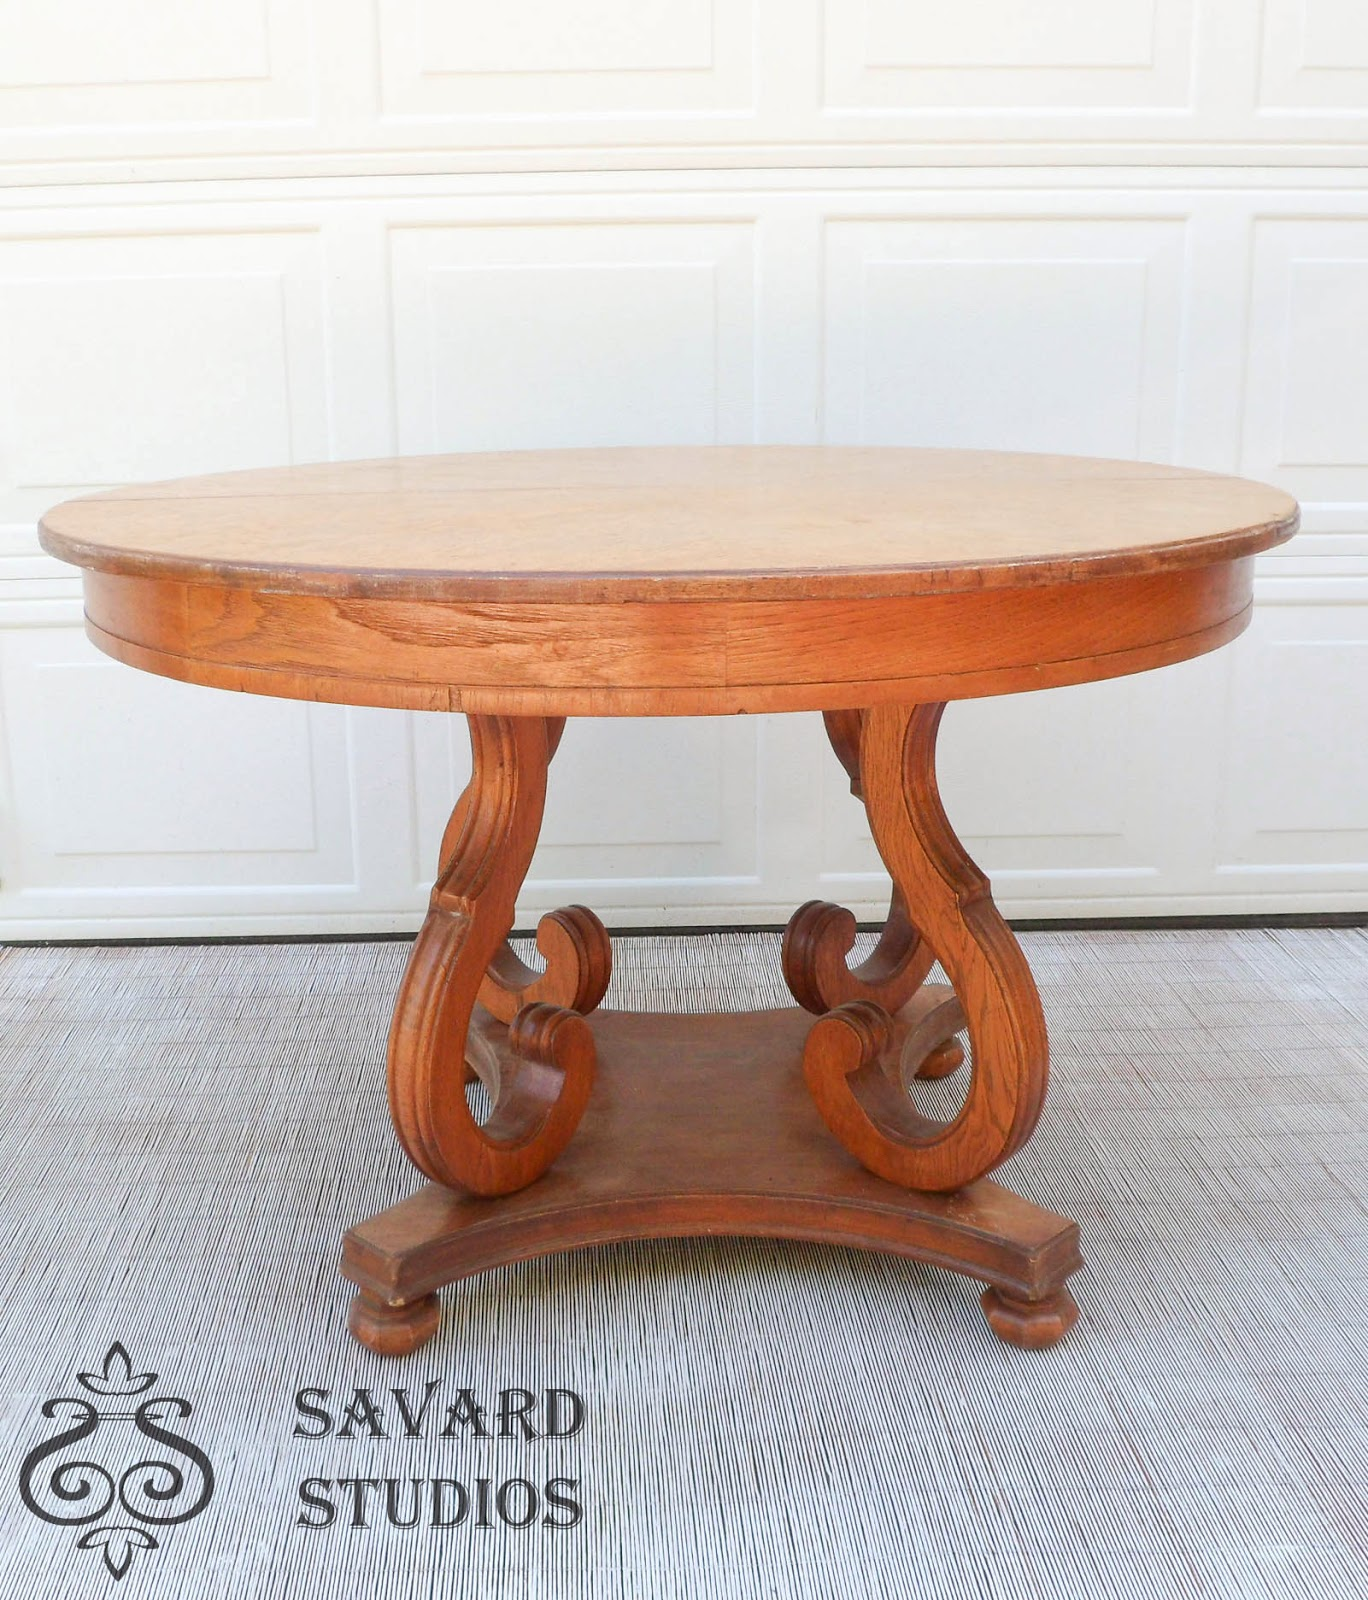 round pedestal table, scrolled base table